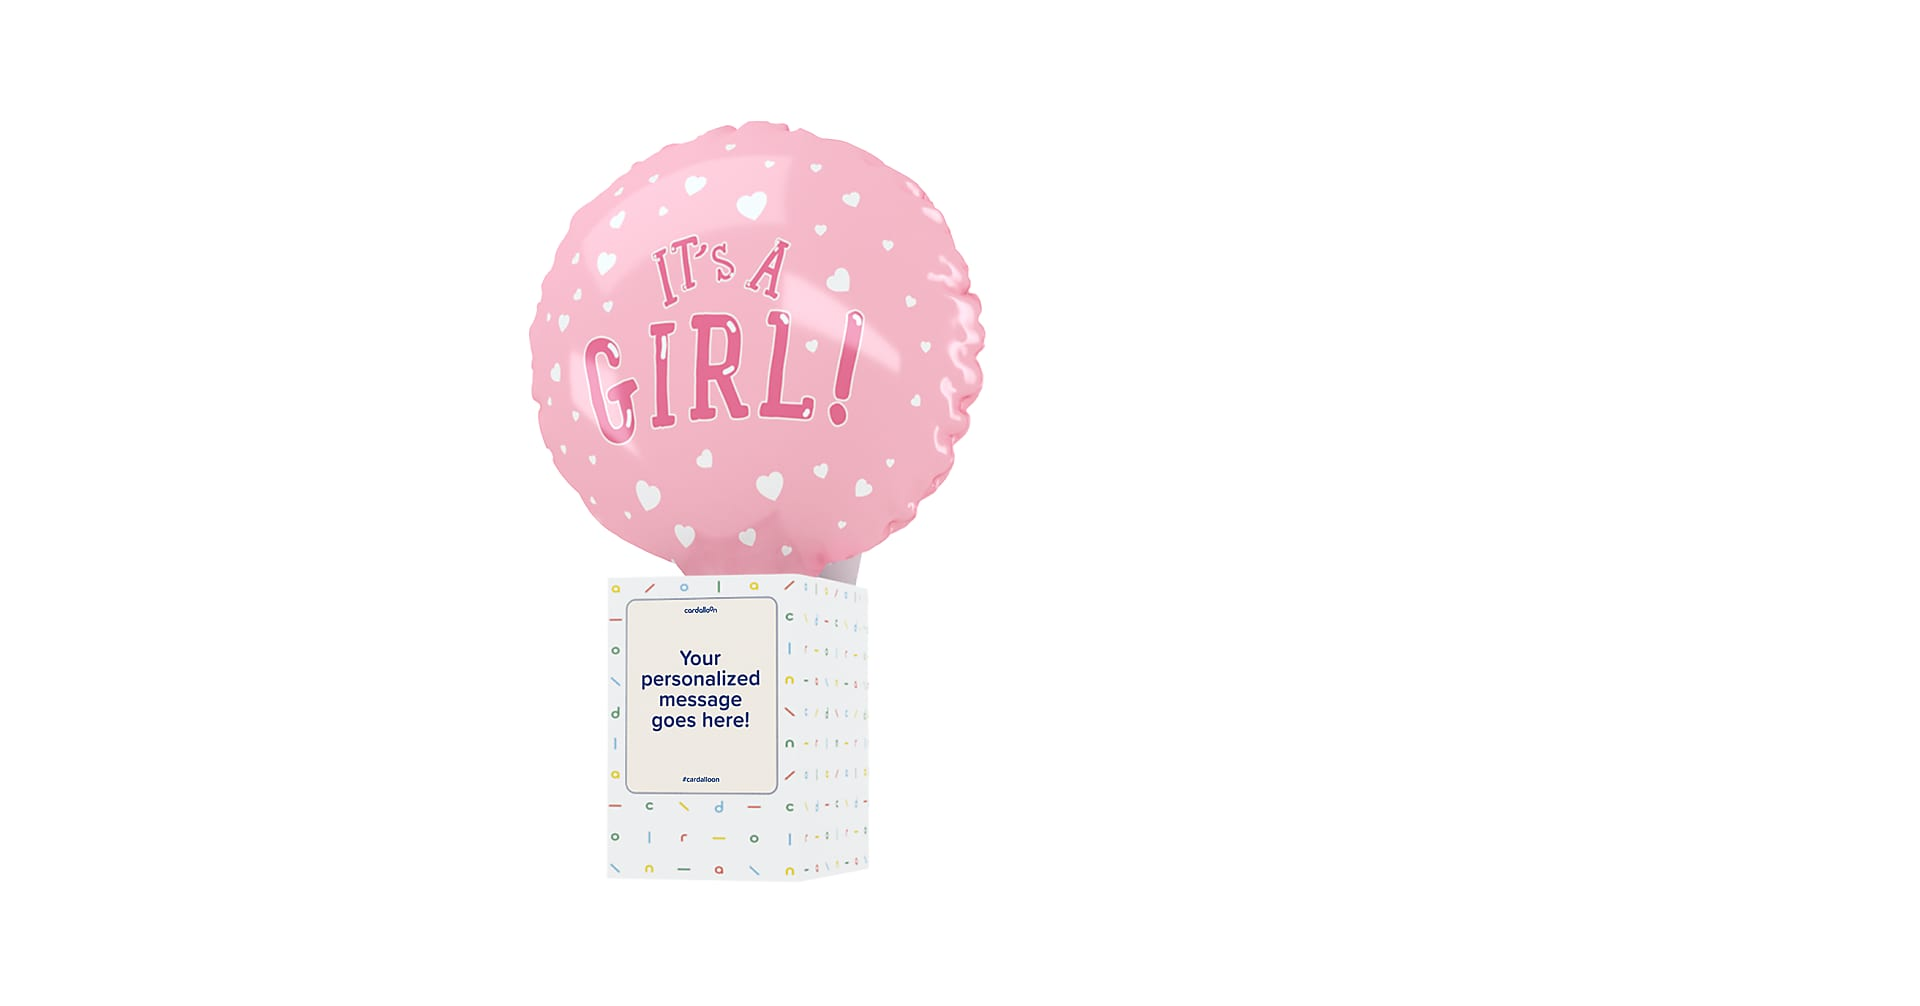 Its A Girl Cardalloon - Image 1 Of 7